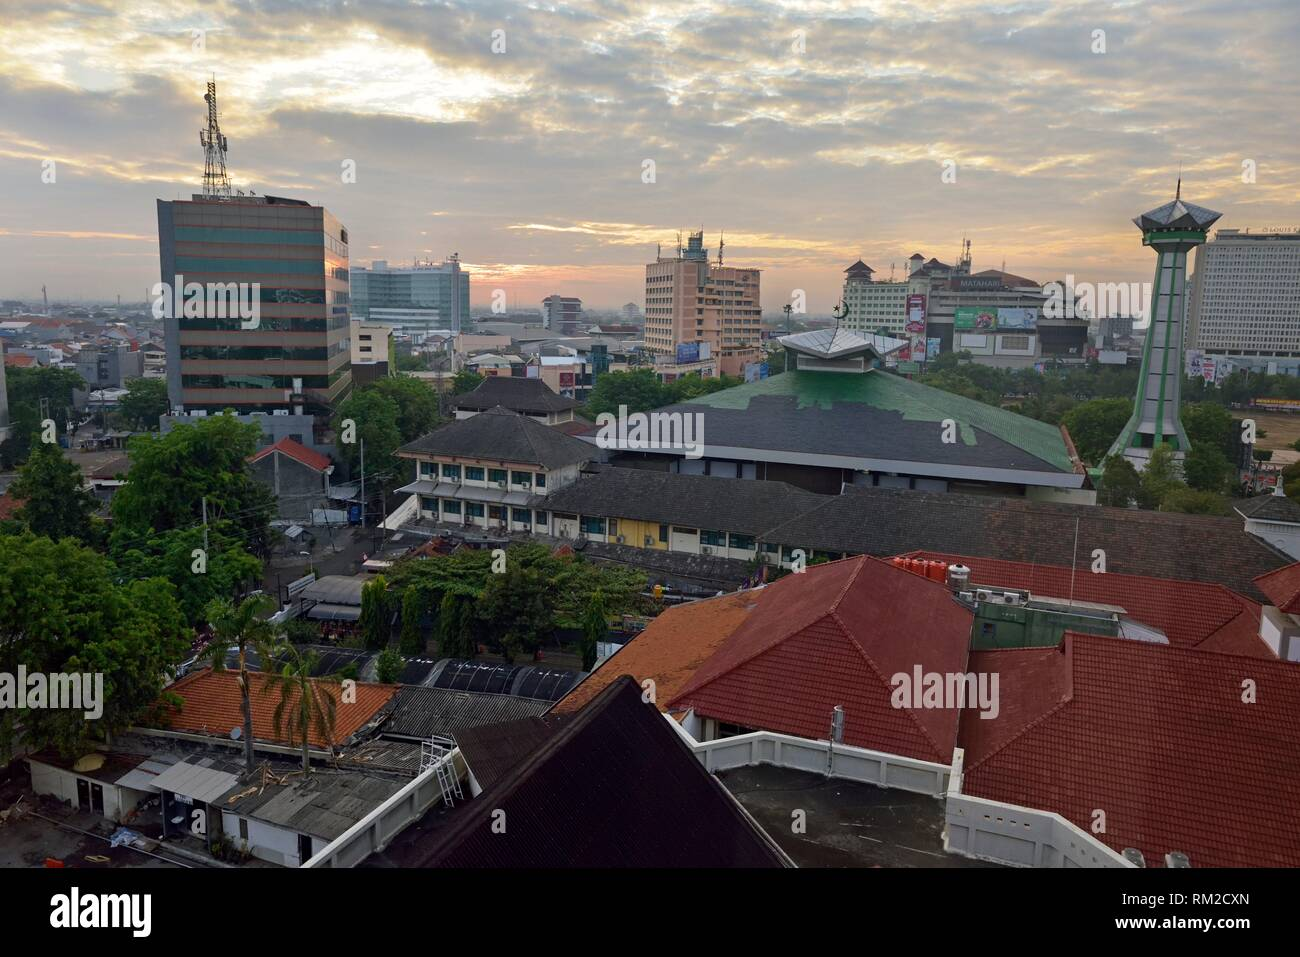 overview of Semarang from the Hotel Santika Premiere, Java island, Indonesia, Southeast Asia. Stock Photo